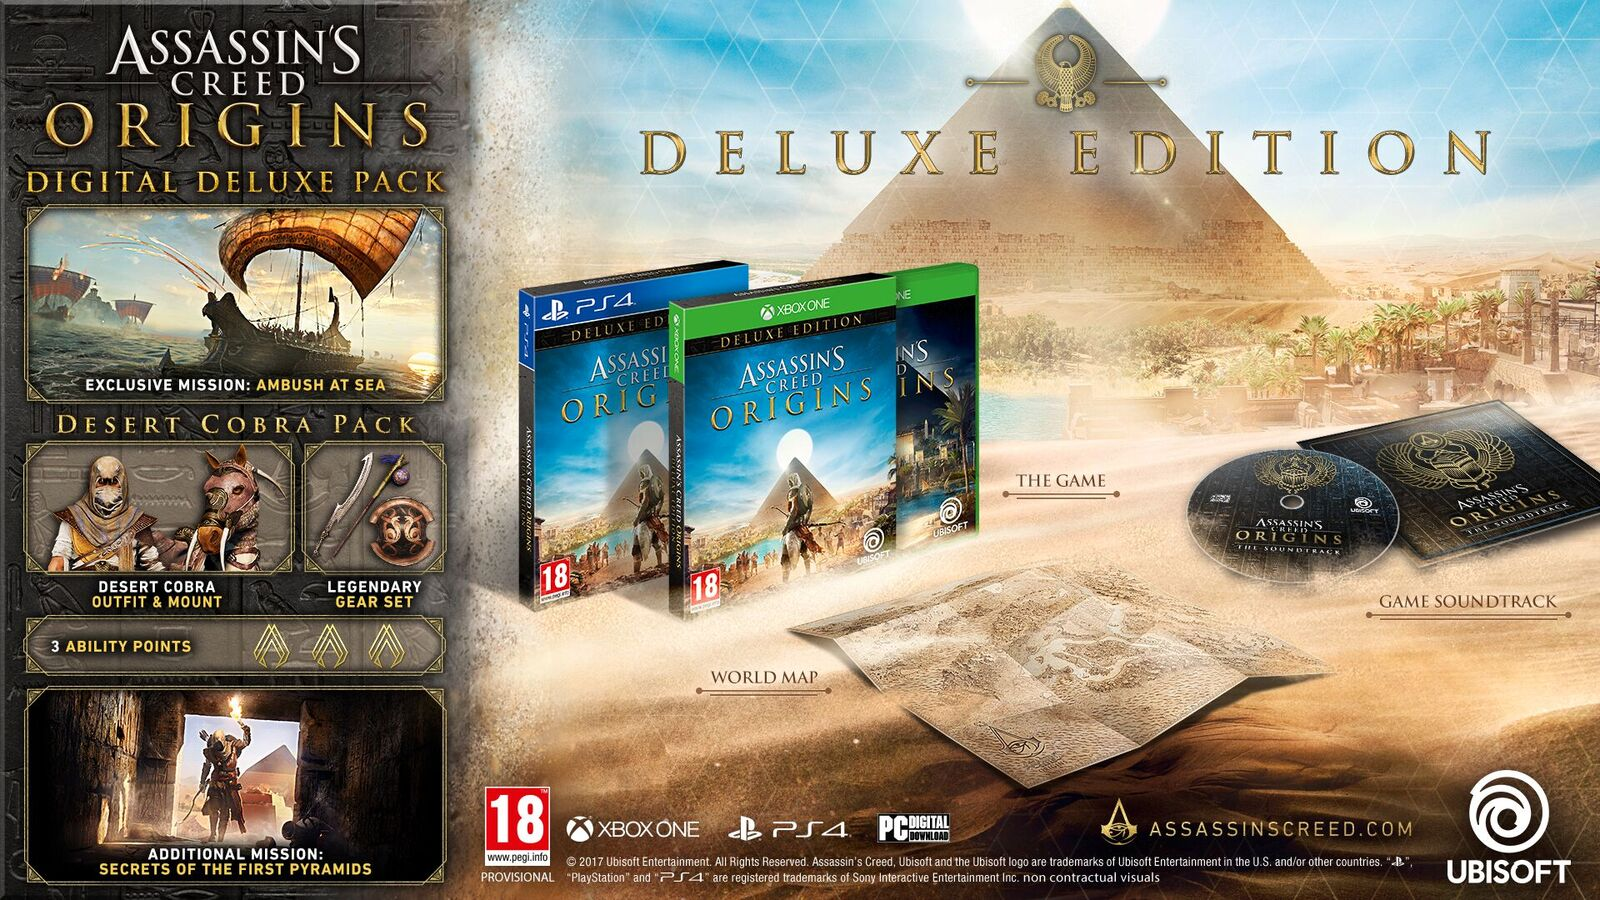 Assassin's Creed: Origins Physical Digital Deluxe Edition